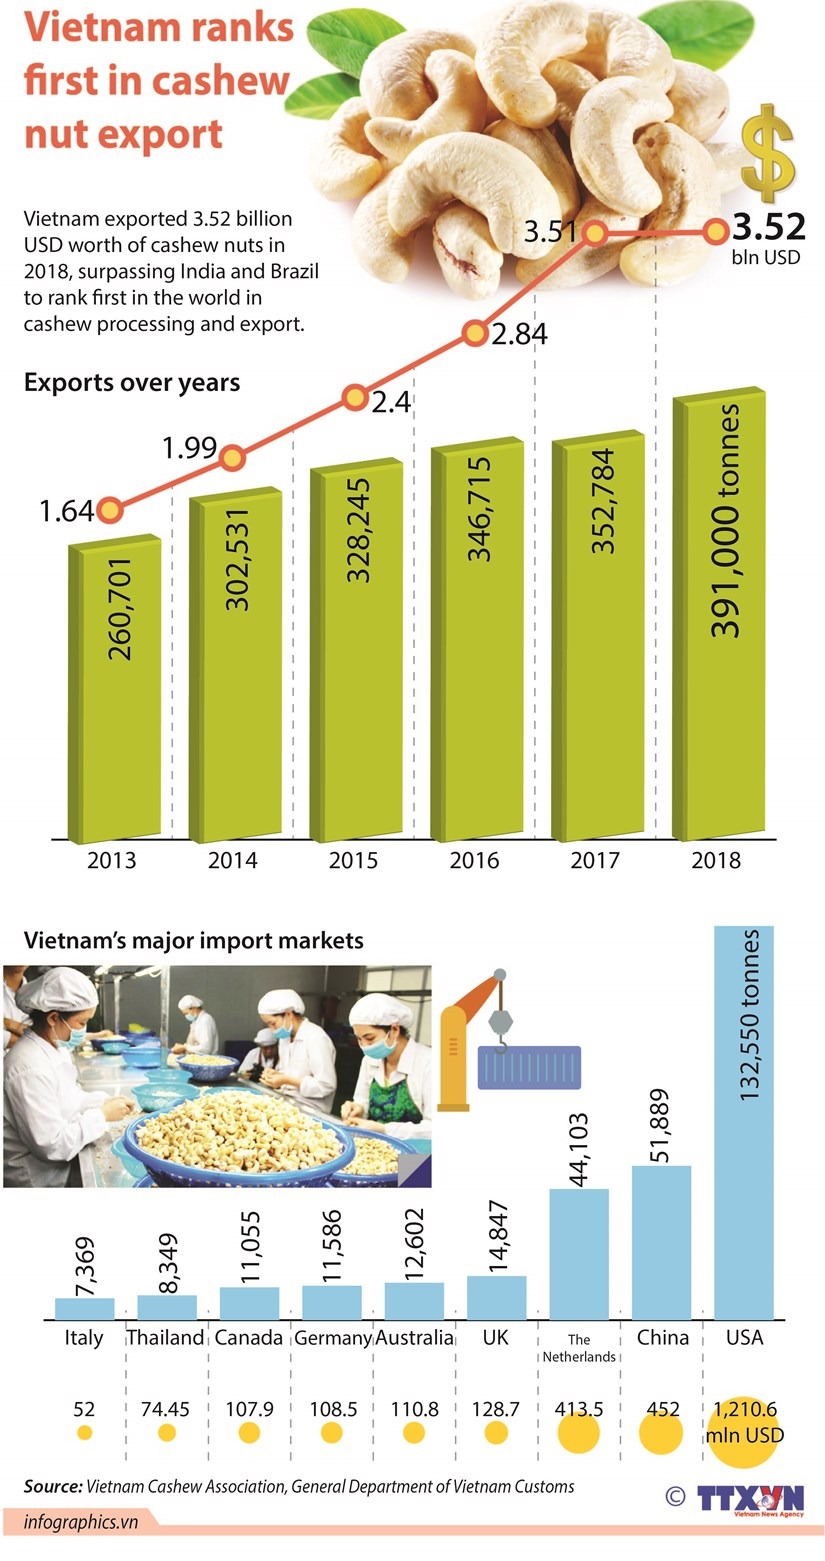 Vietnam ranks first in cashew nut export hinh anh 1